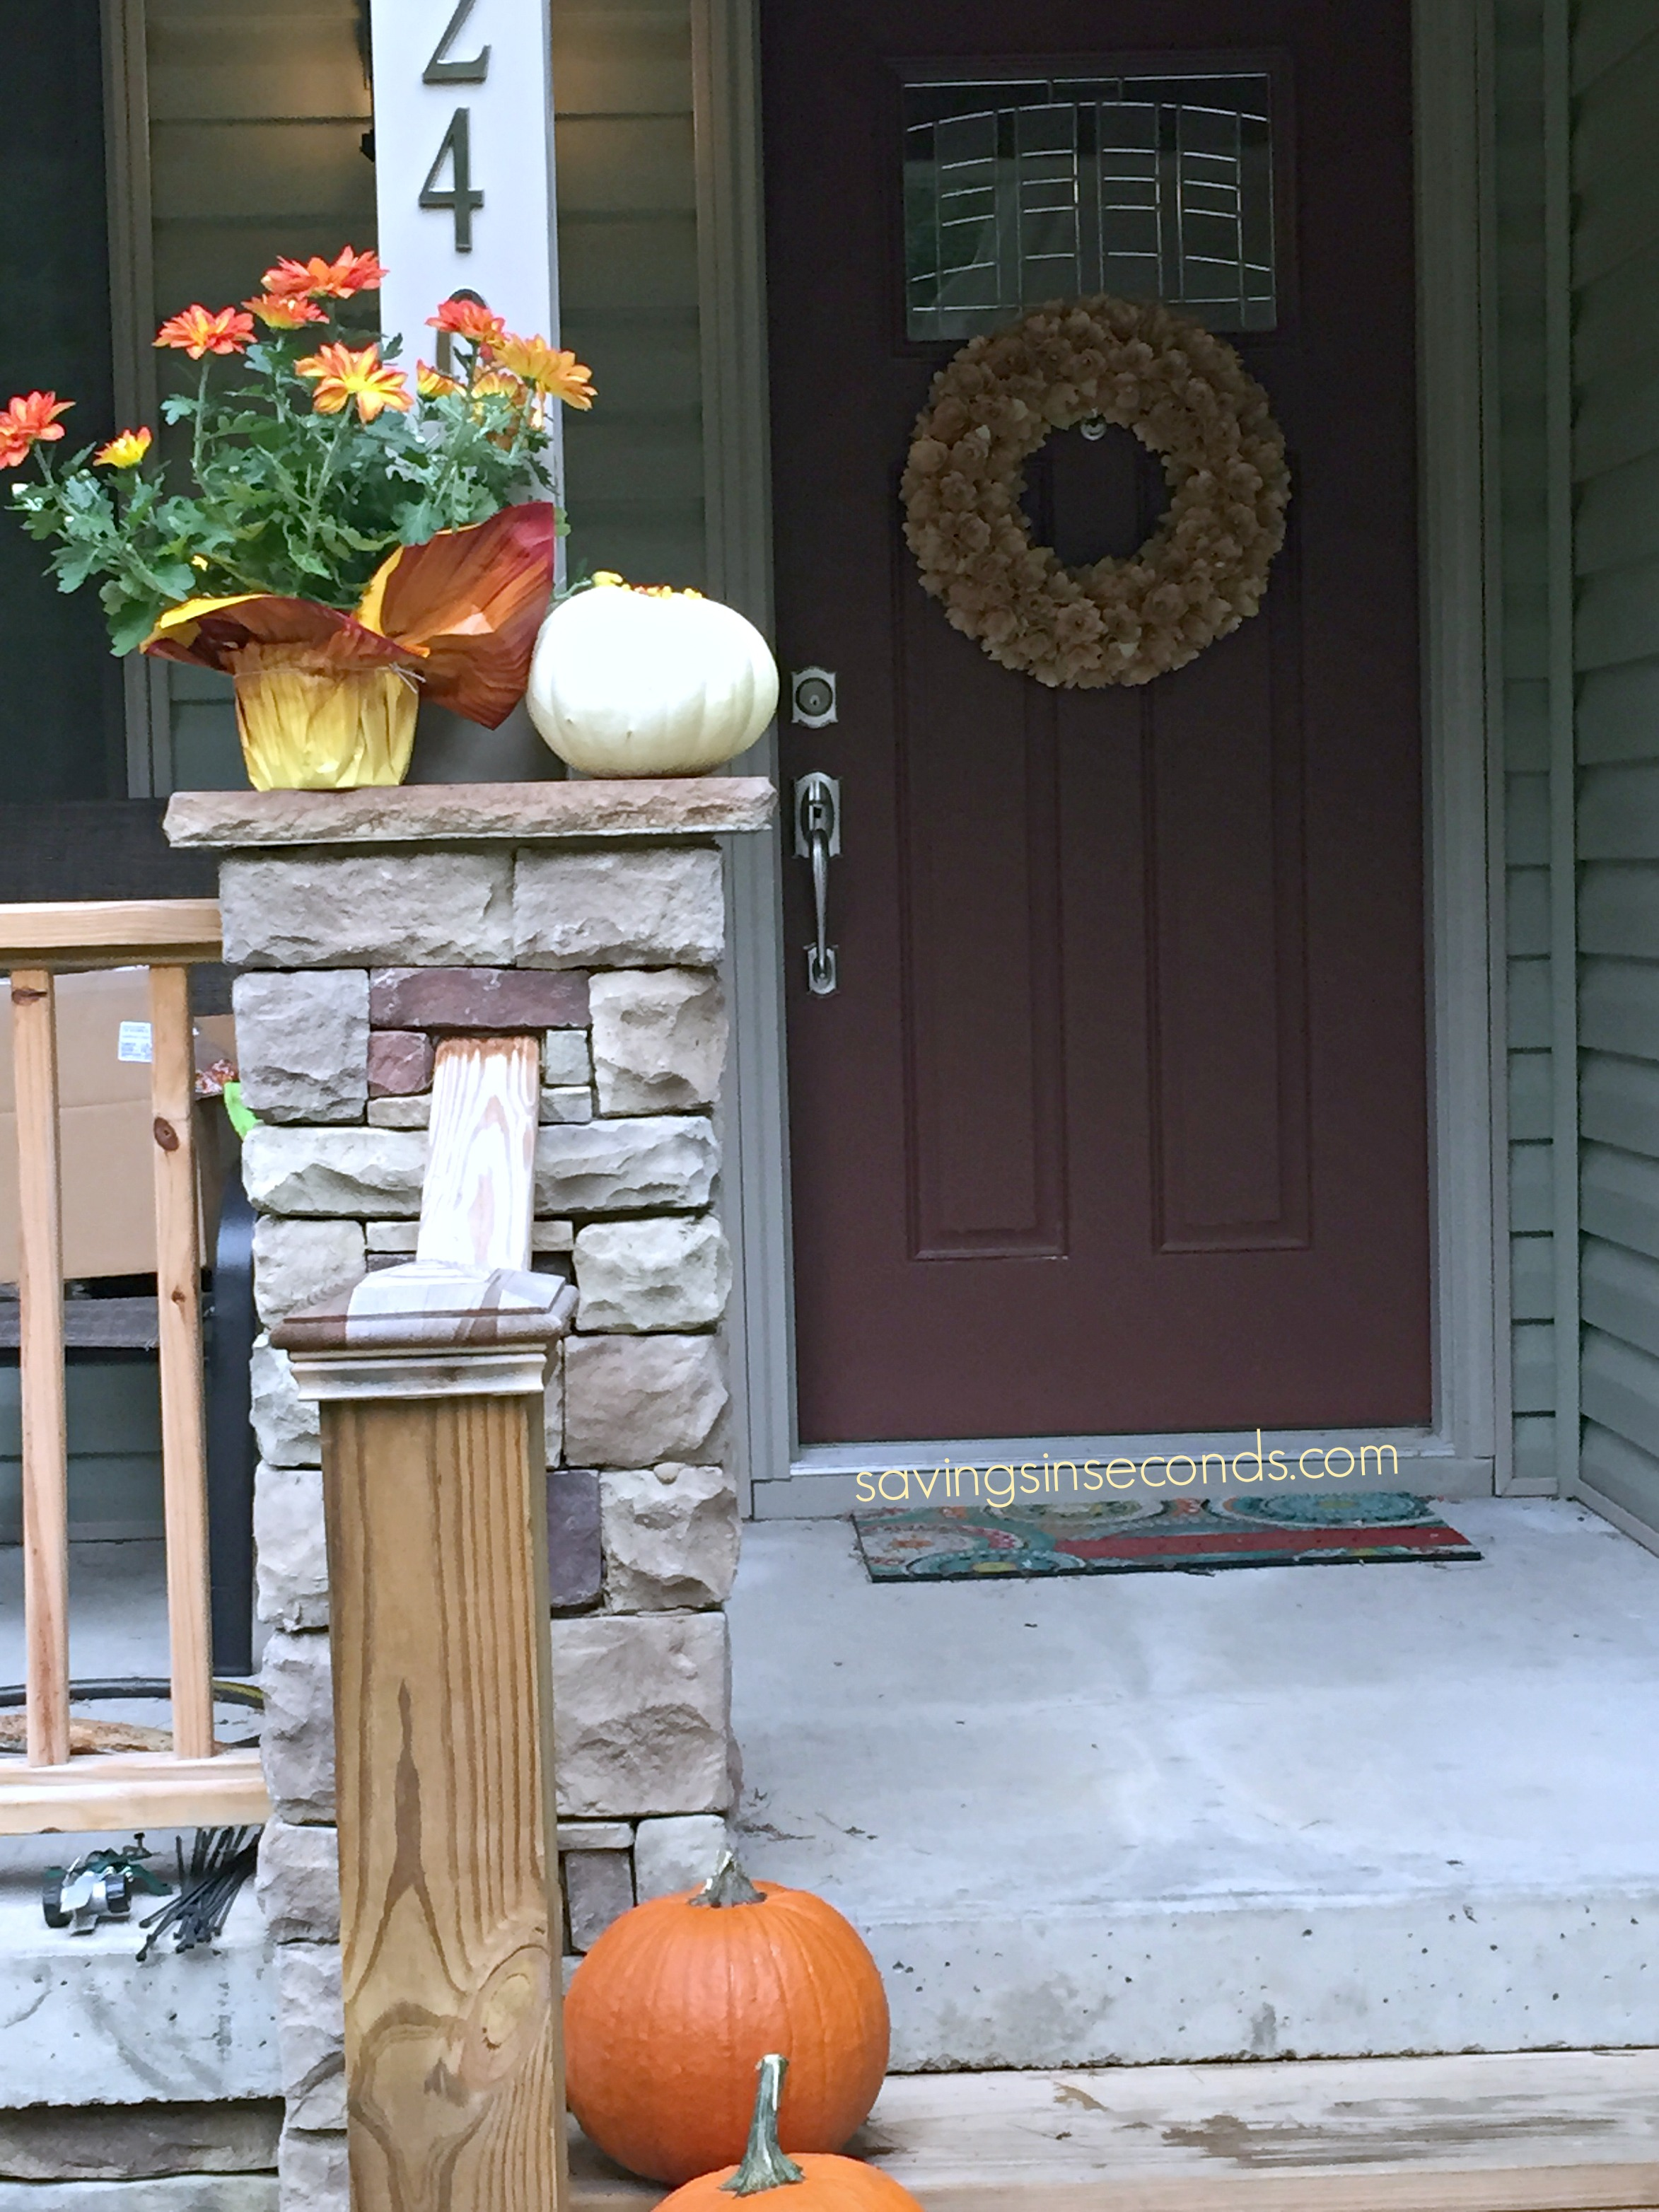 Decorate with candy this fall! #SweetworksAutumn #giveaway #ad savingsinseconds.com